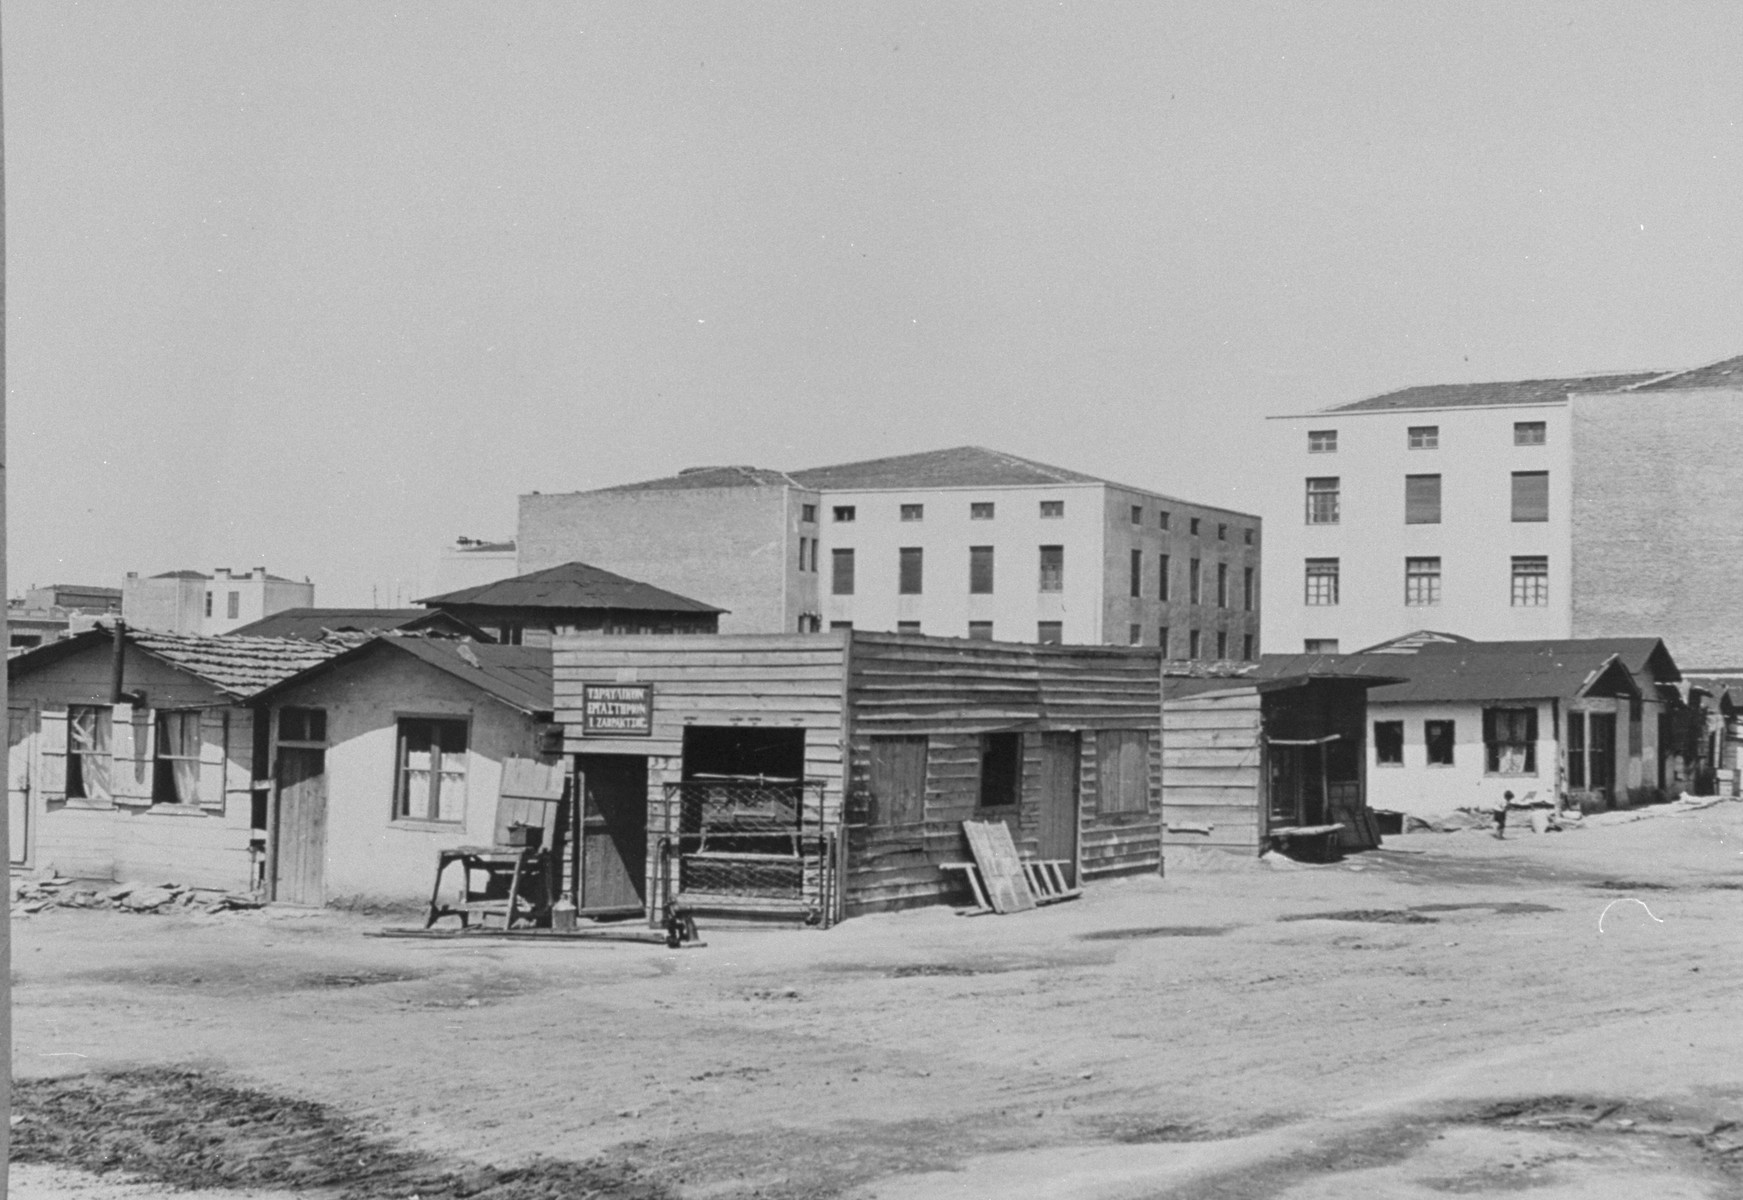 View of the temporary housing at Camp Campbell, where thousands of Jews were crowded in with Greeks and Armenians because the government was not able to provide sufficient housing.